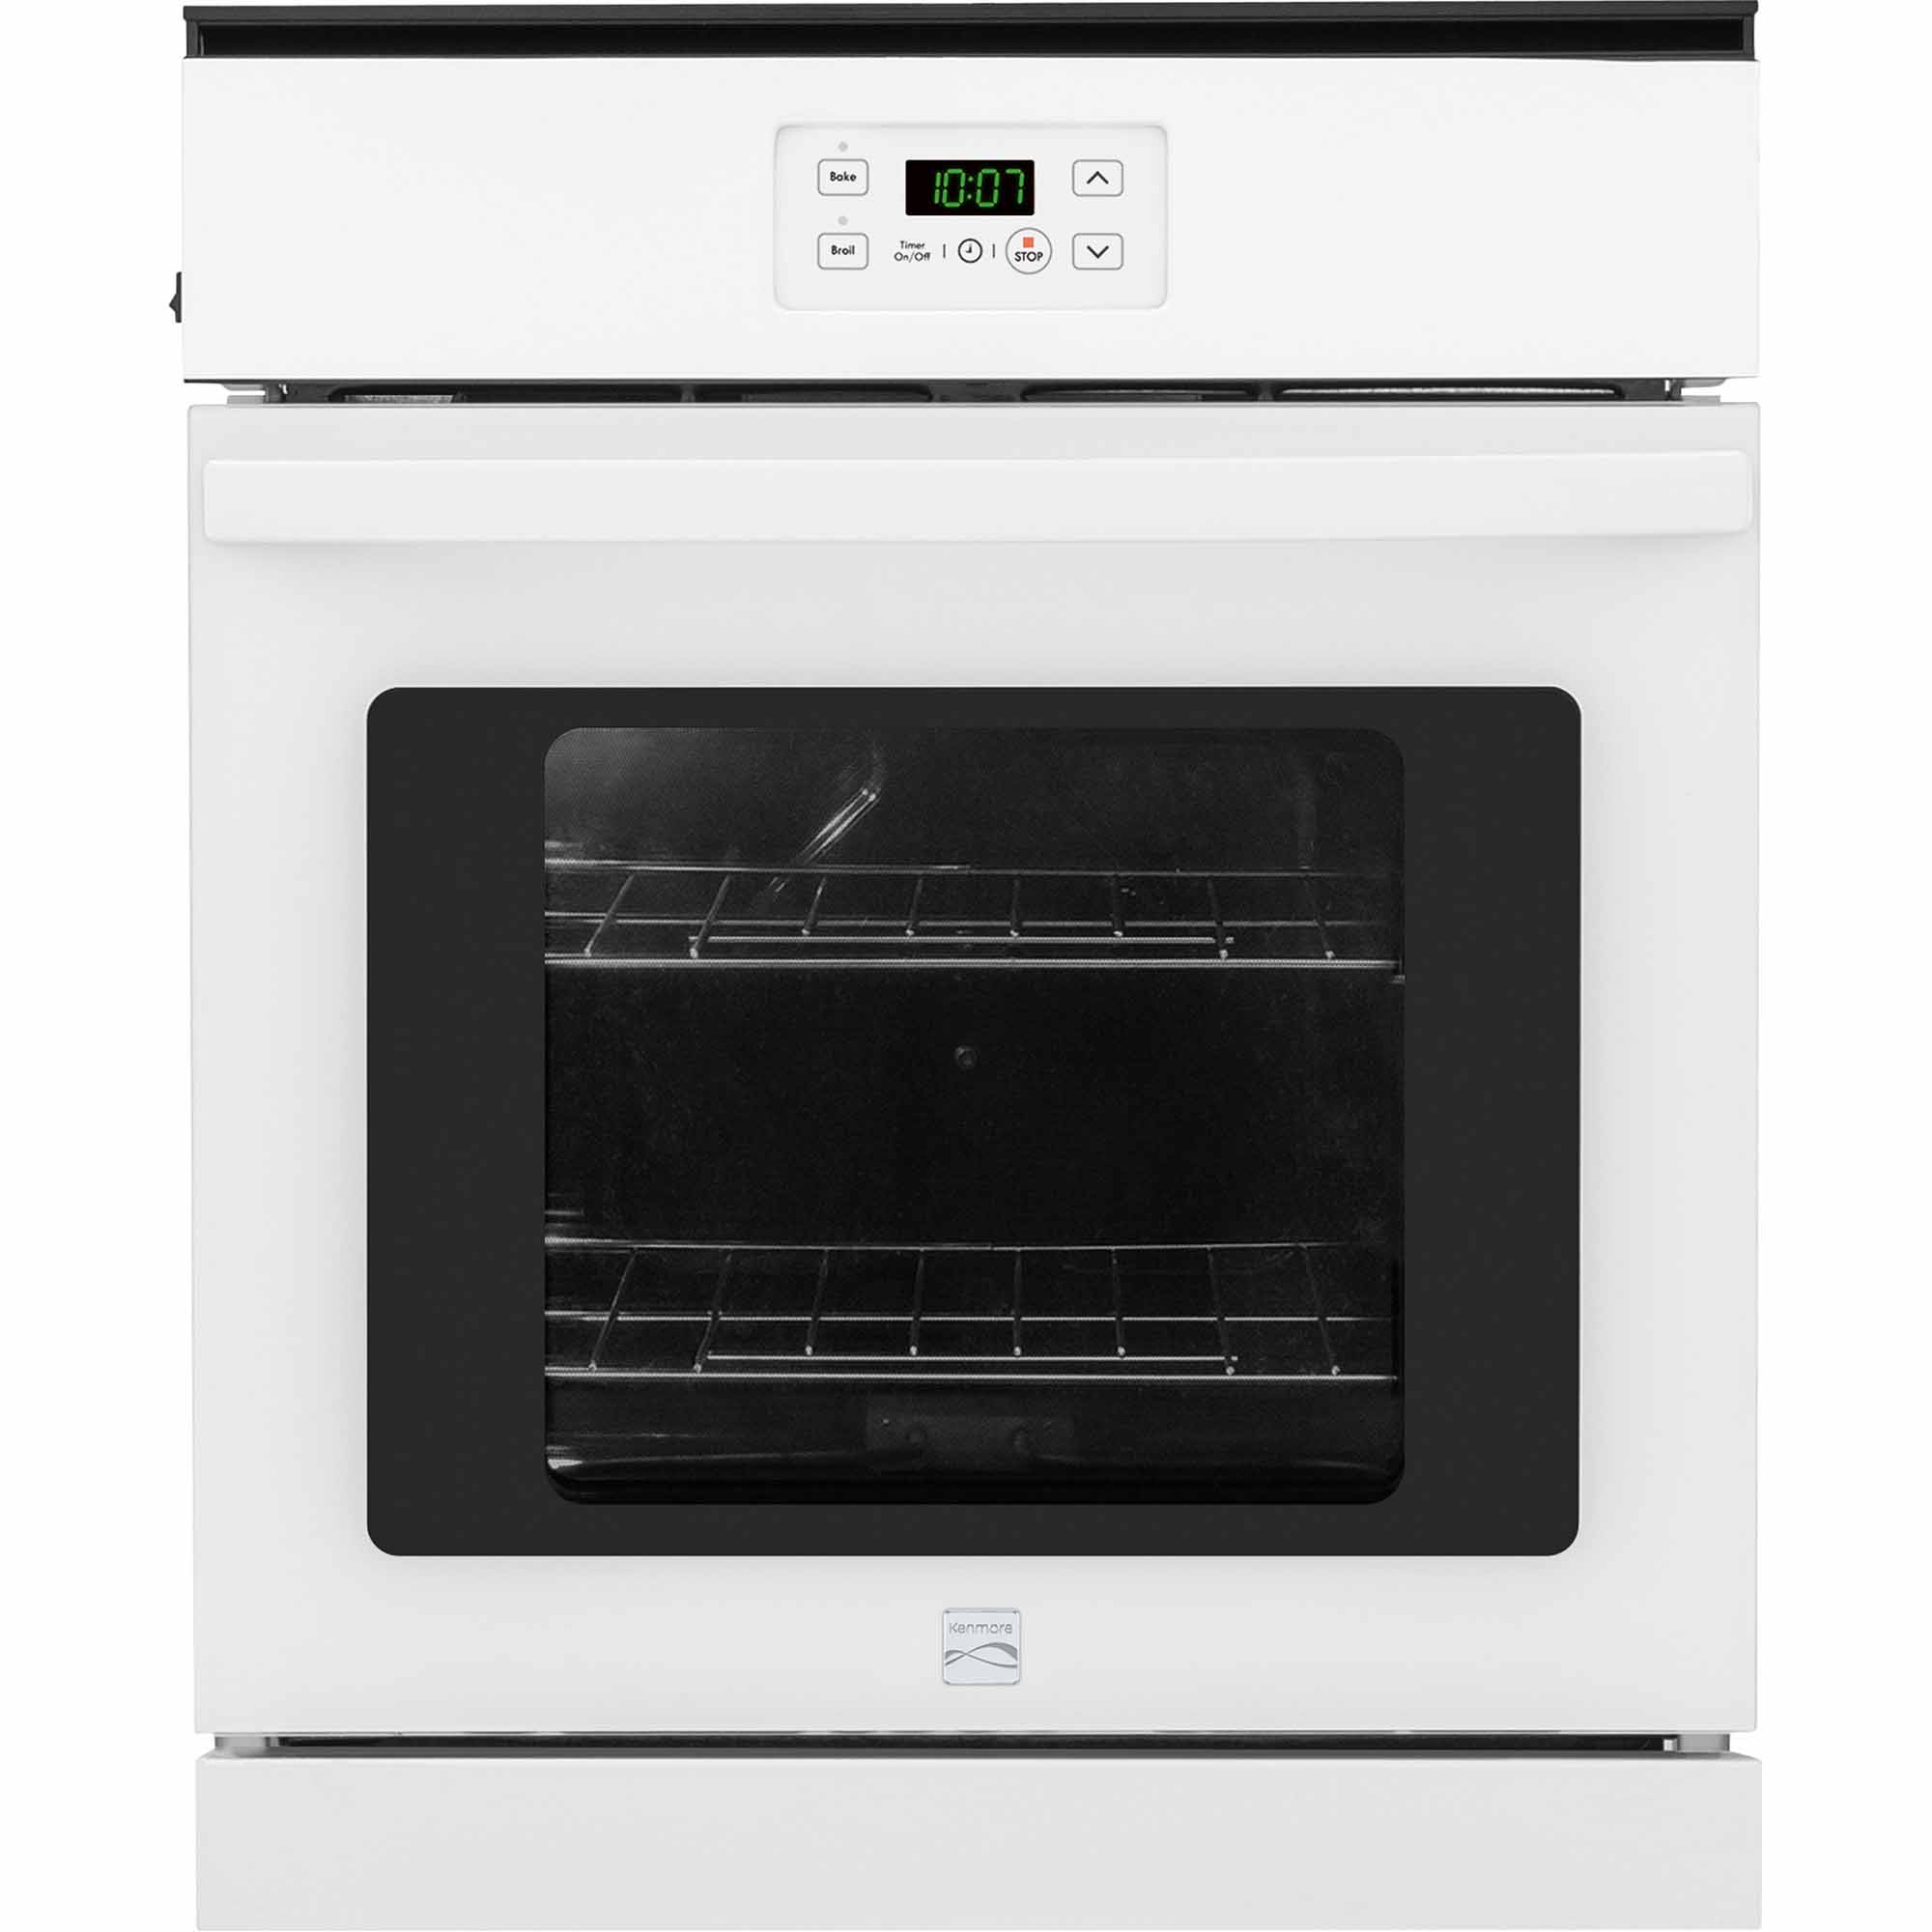 Kenmore 40272 24 Manual Clean Electric Wall Oven - White